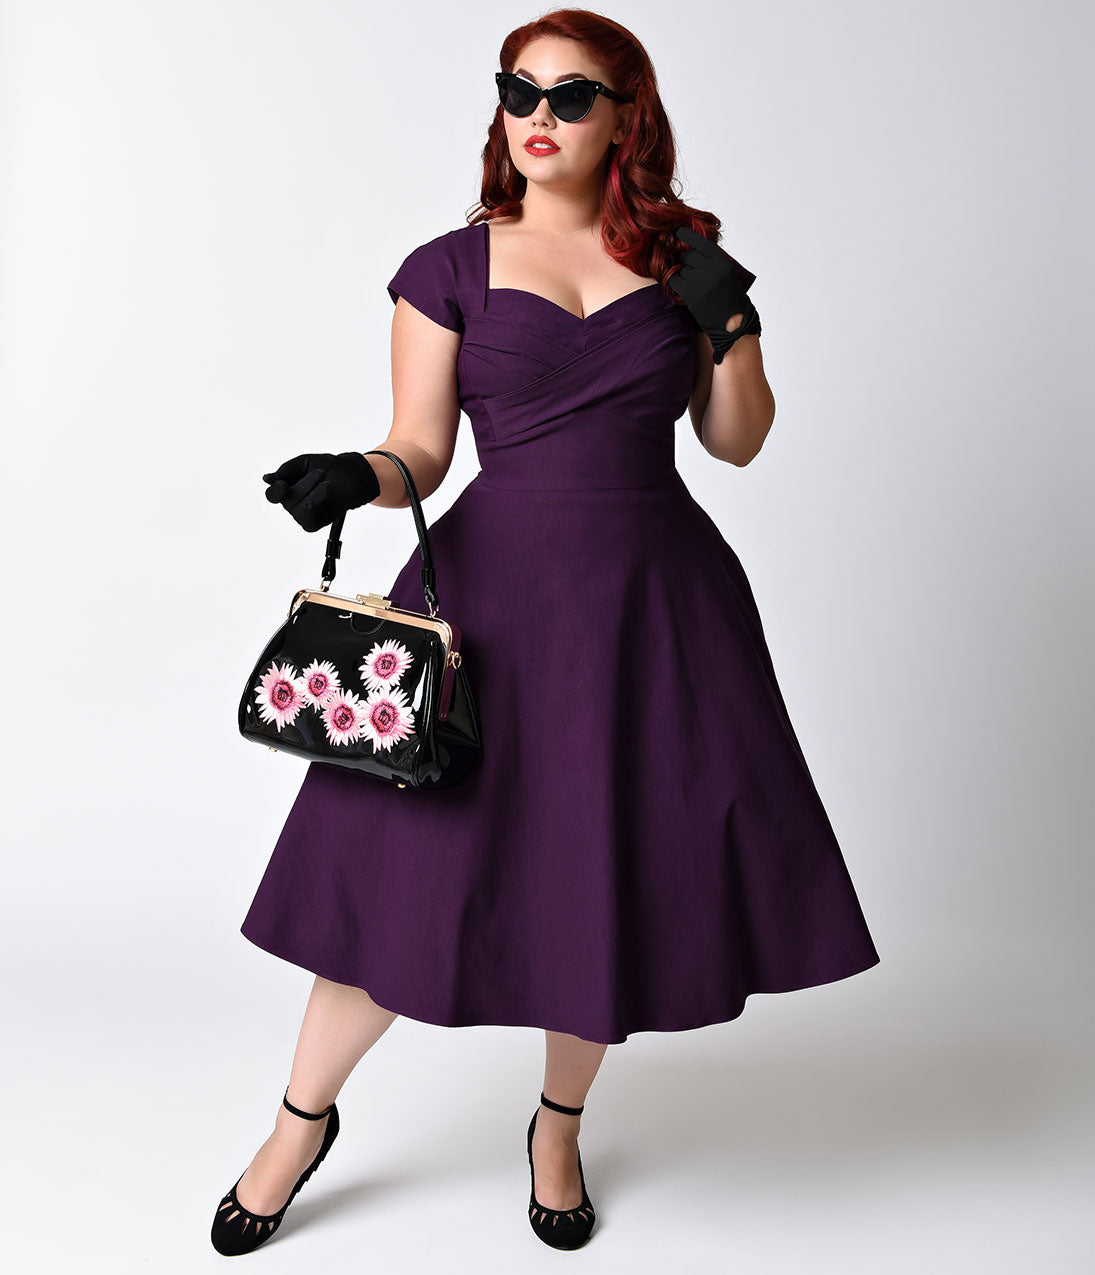 Dress Like the Marvelous Mrs. Maisel Stop Staring Plus Size Mad Style Eggplant Cap Sleeve Swing Dress $178.00 AT vintagedancer.com